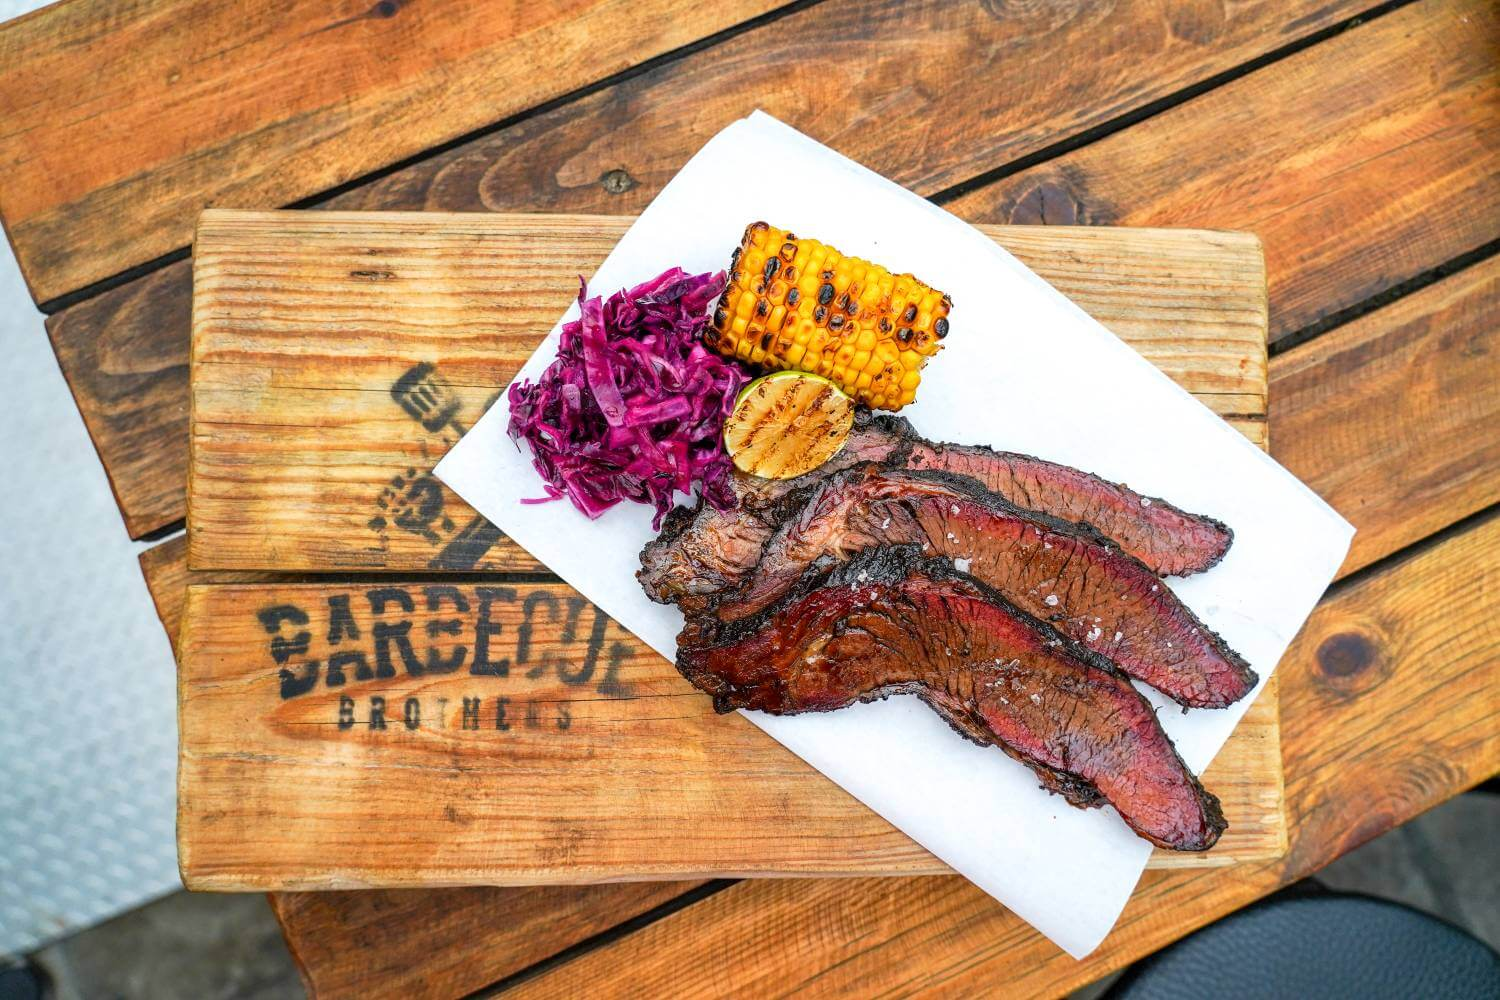 Barbecue Brothers - Go Guide Issue 185